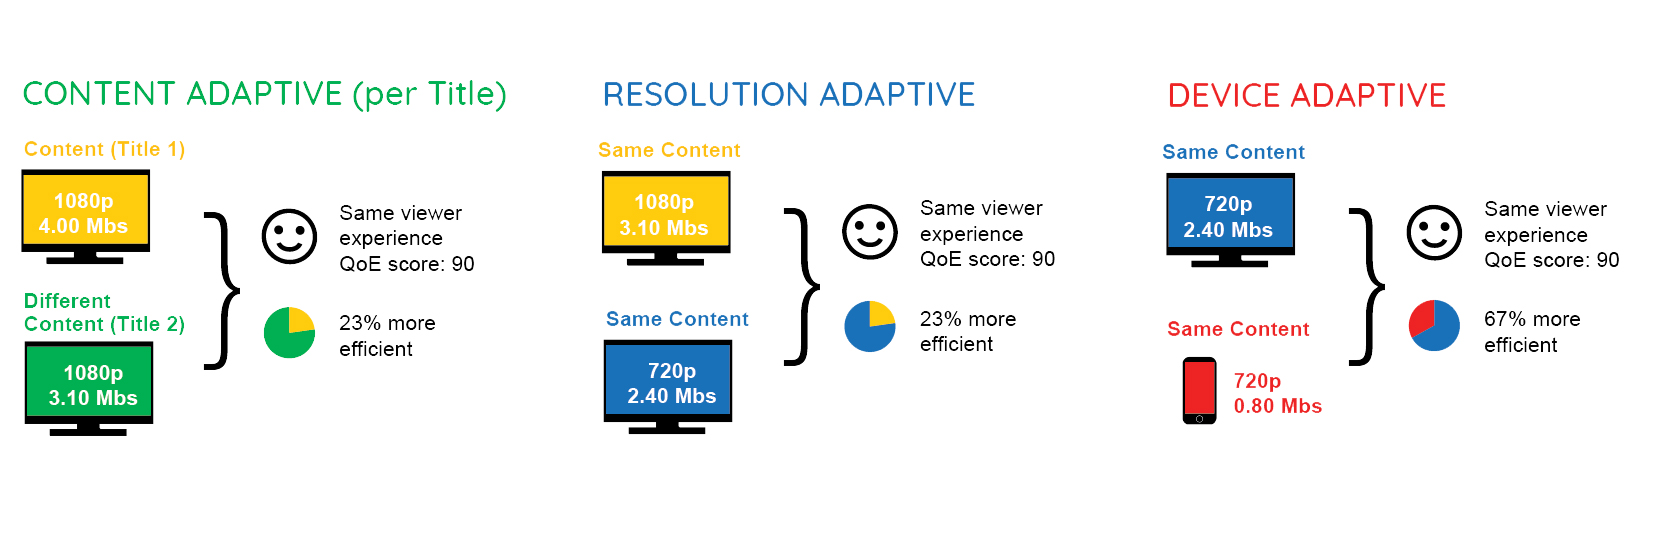 SSIMPLUS Optimizer Savings Infographic - content, resolution and device adaptive